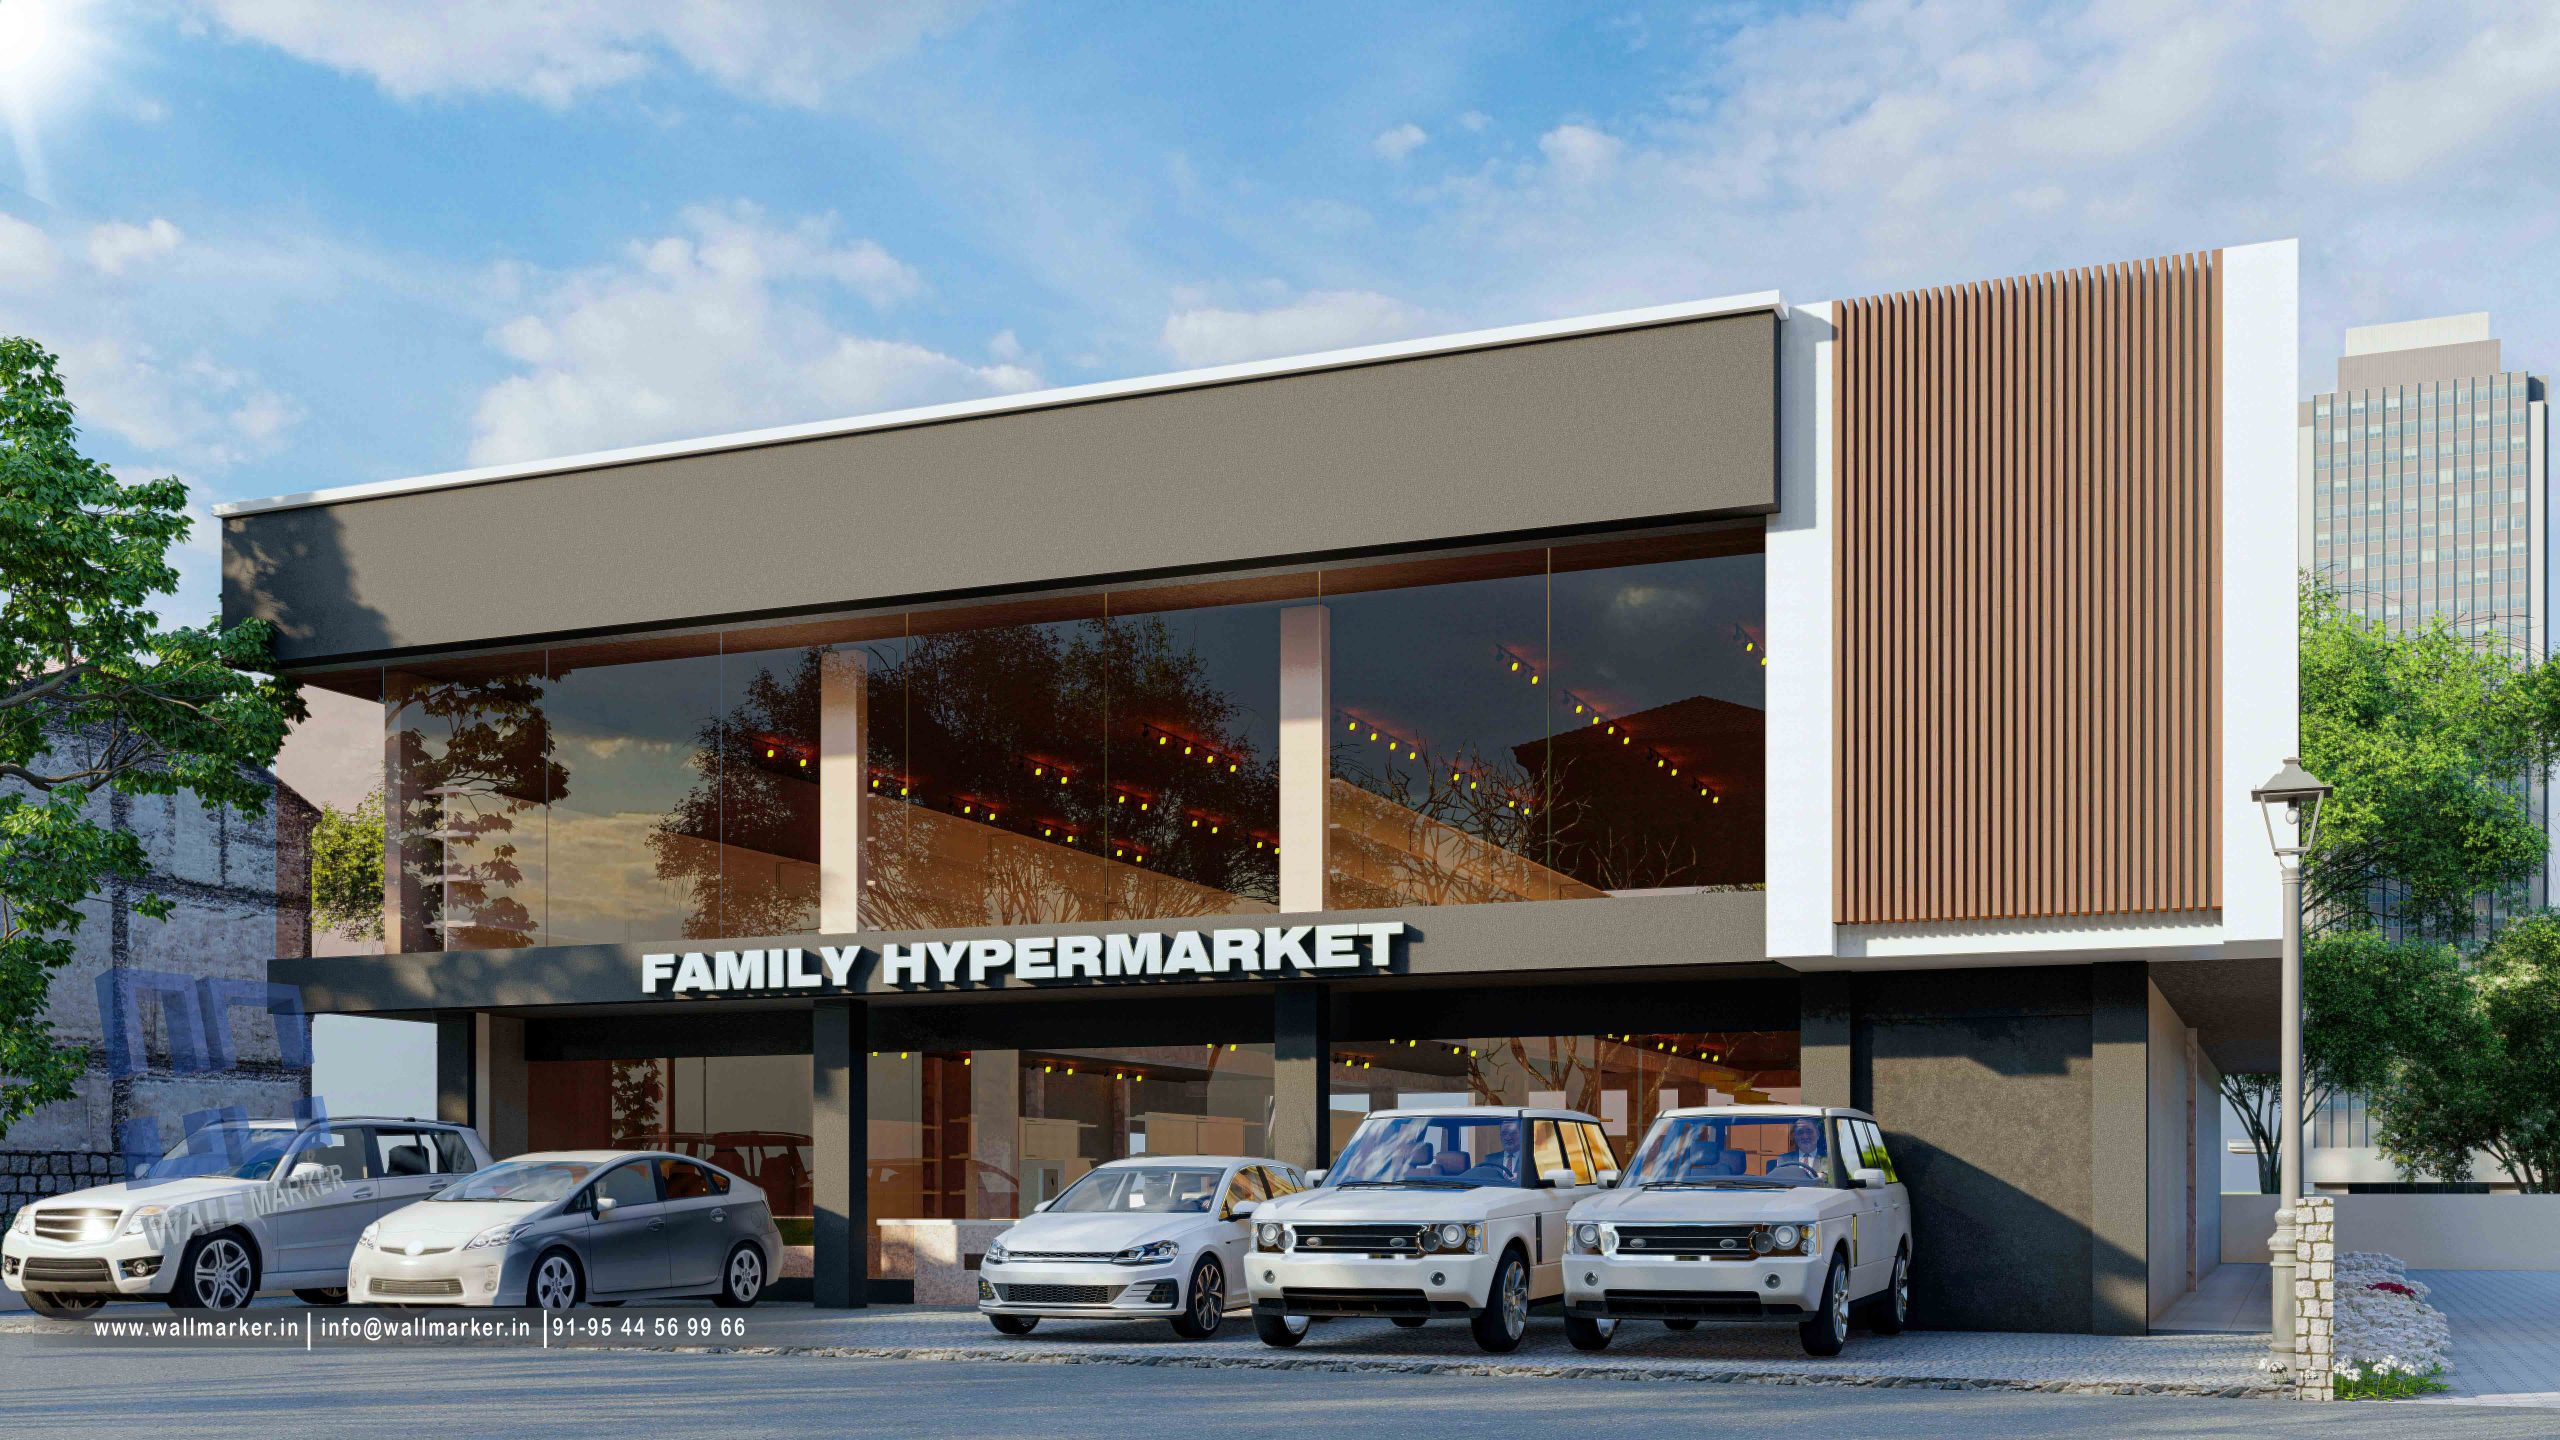 ON GOING HYPERMARKET PROJECT AT NADHAPURAM